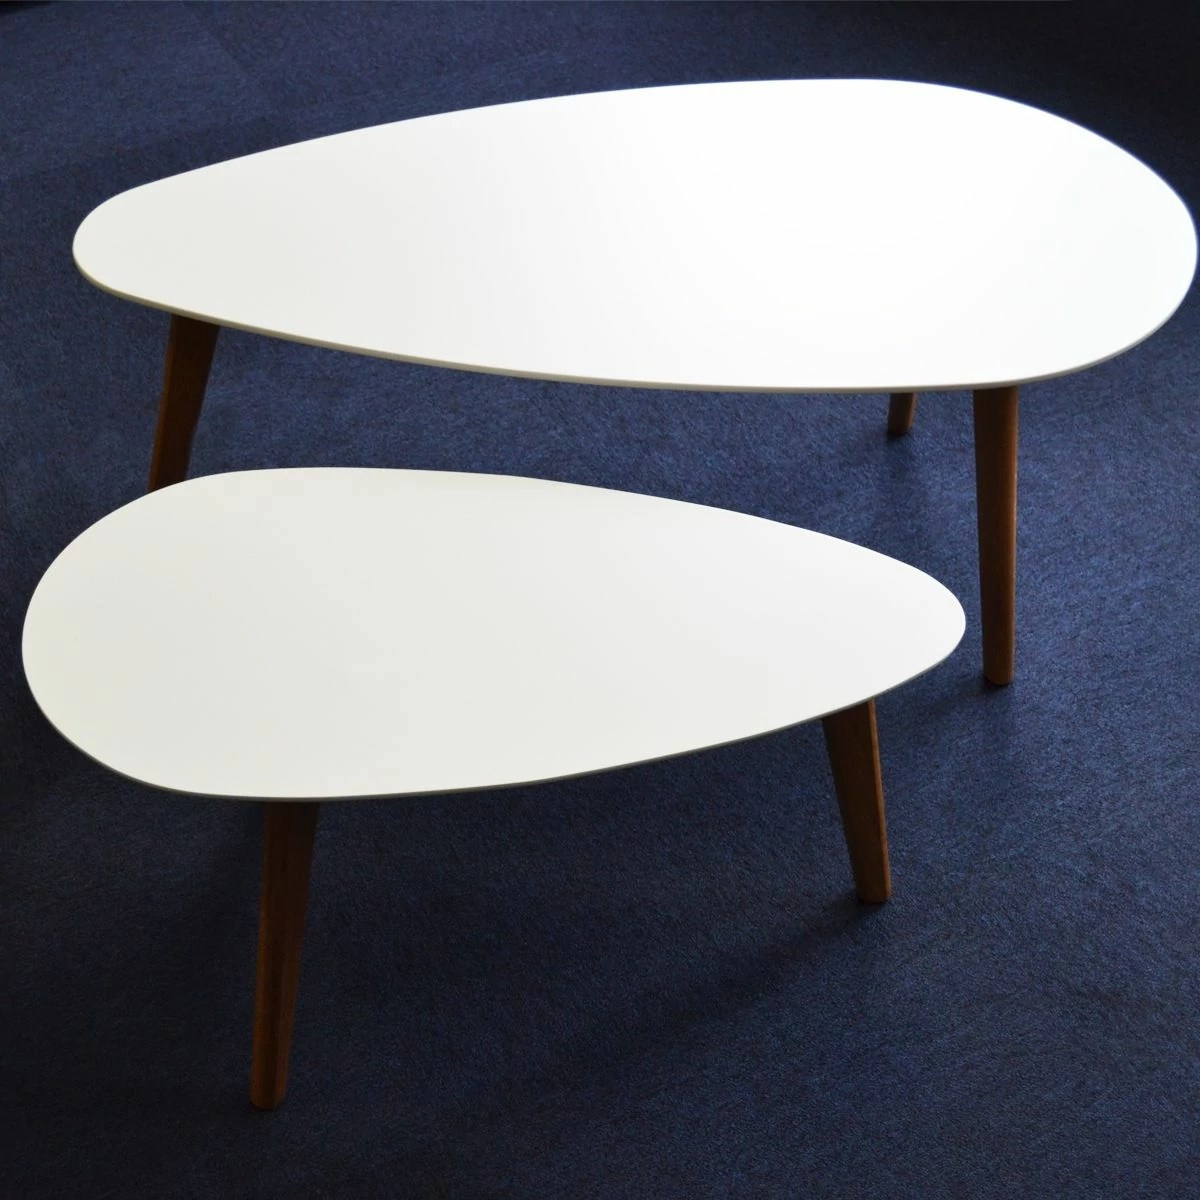 Table Basse Gigogne Design Tables Basses Gigognes Design Compas Zendart Design